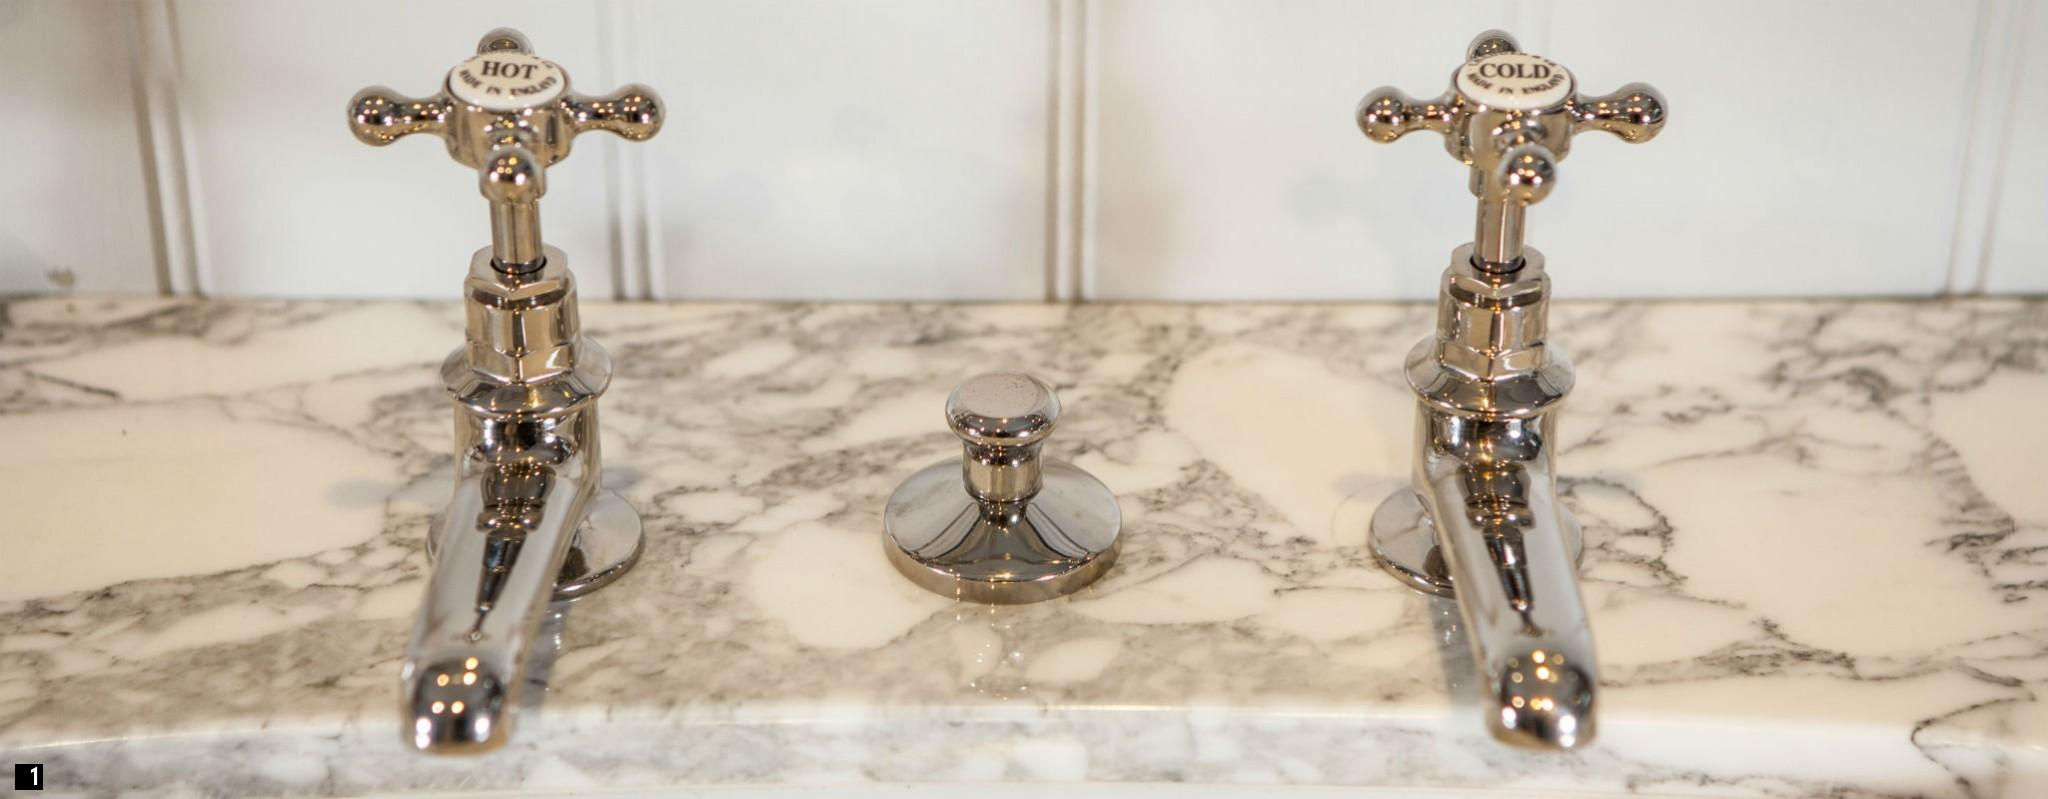 Basin Taps & Fillers | Product Categories | Chadder & Co.